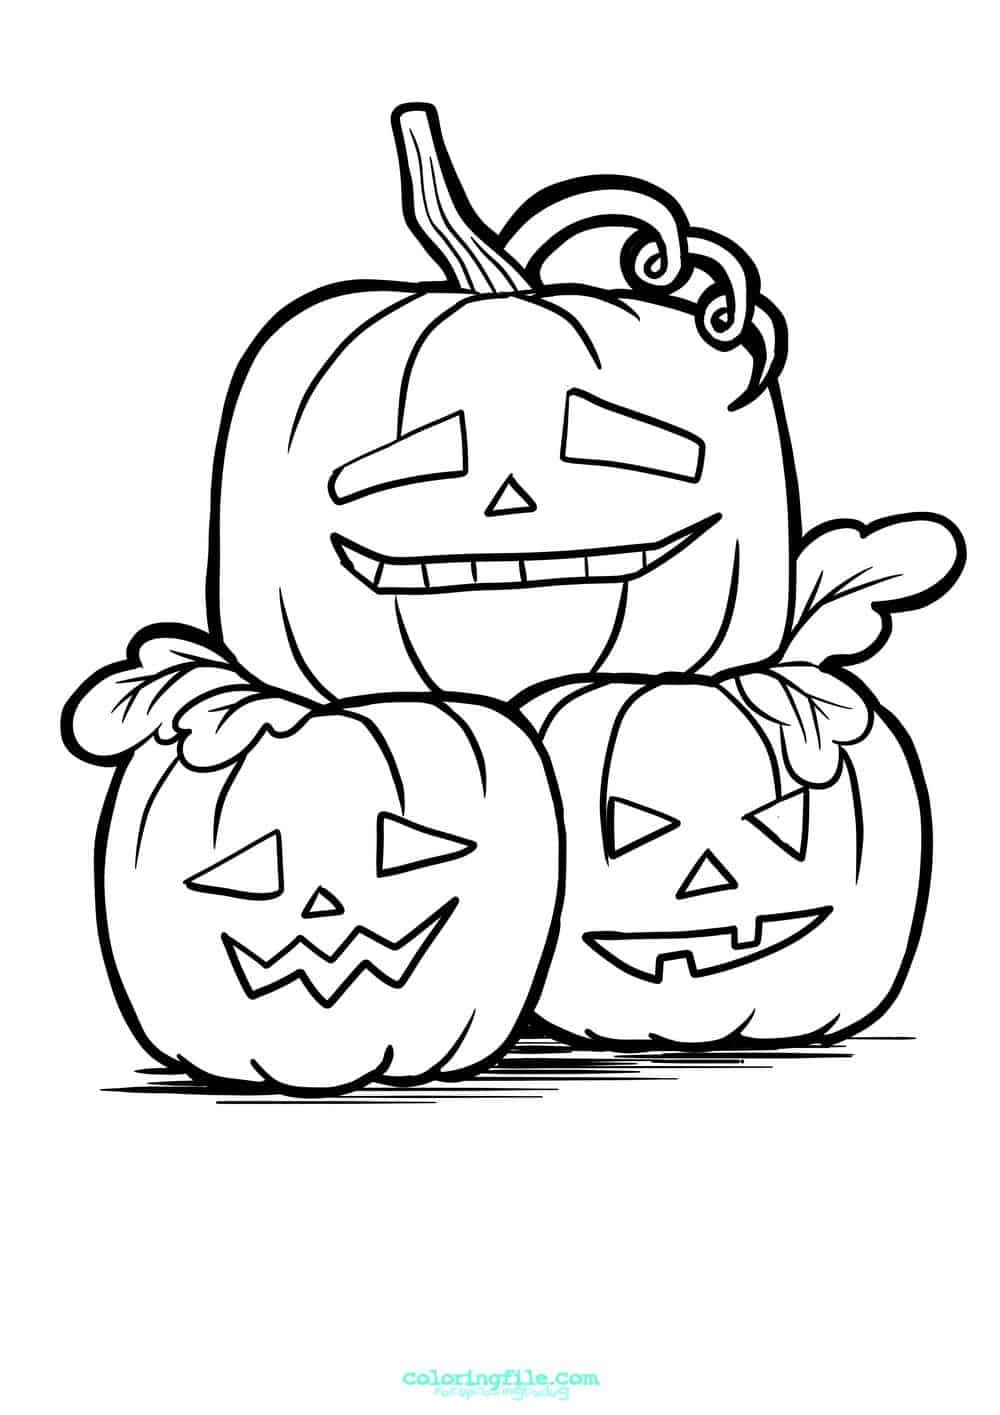 Halloween Stacked Pumpkin Coloring Pages Halloween Coloring Pages Halloween Coloring Pages Printable Pumpkin Coloring Pages